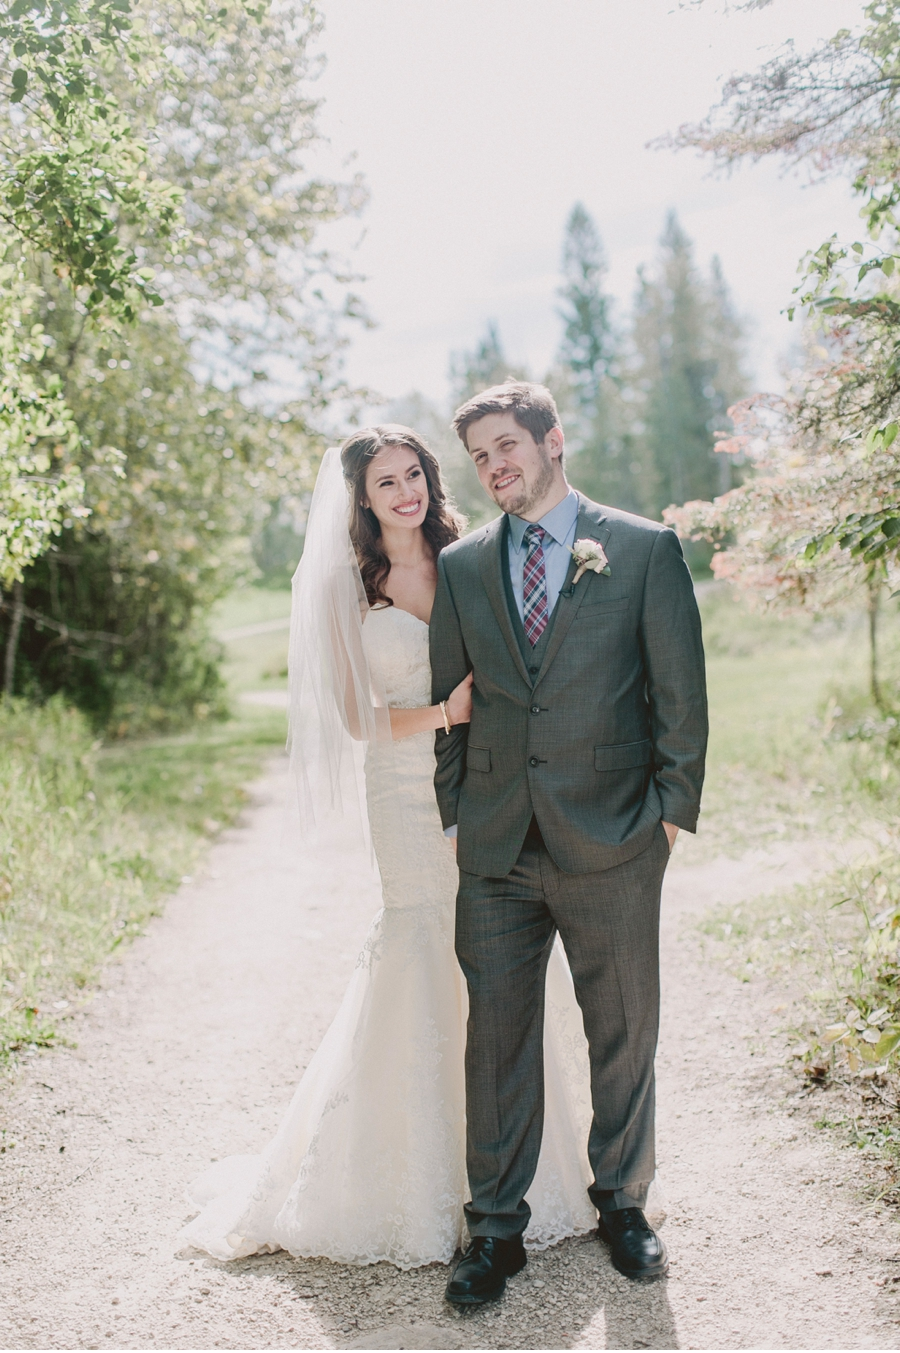 Manitoba-Wedding-Inspiration